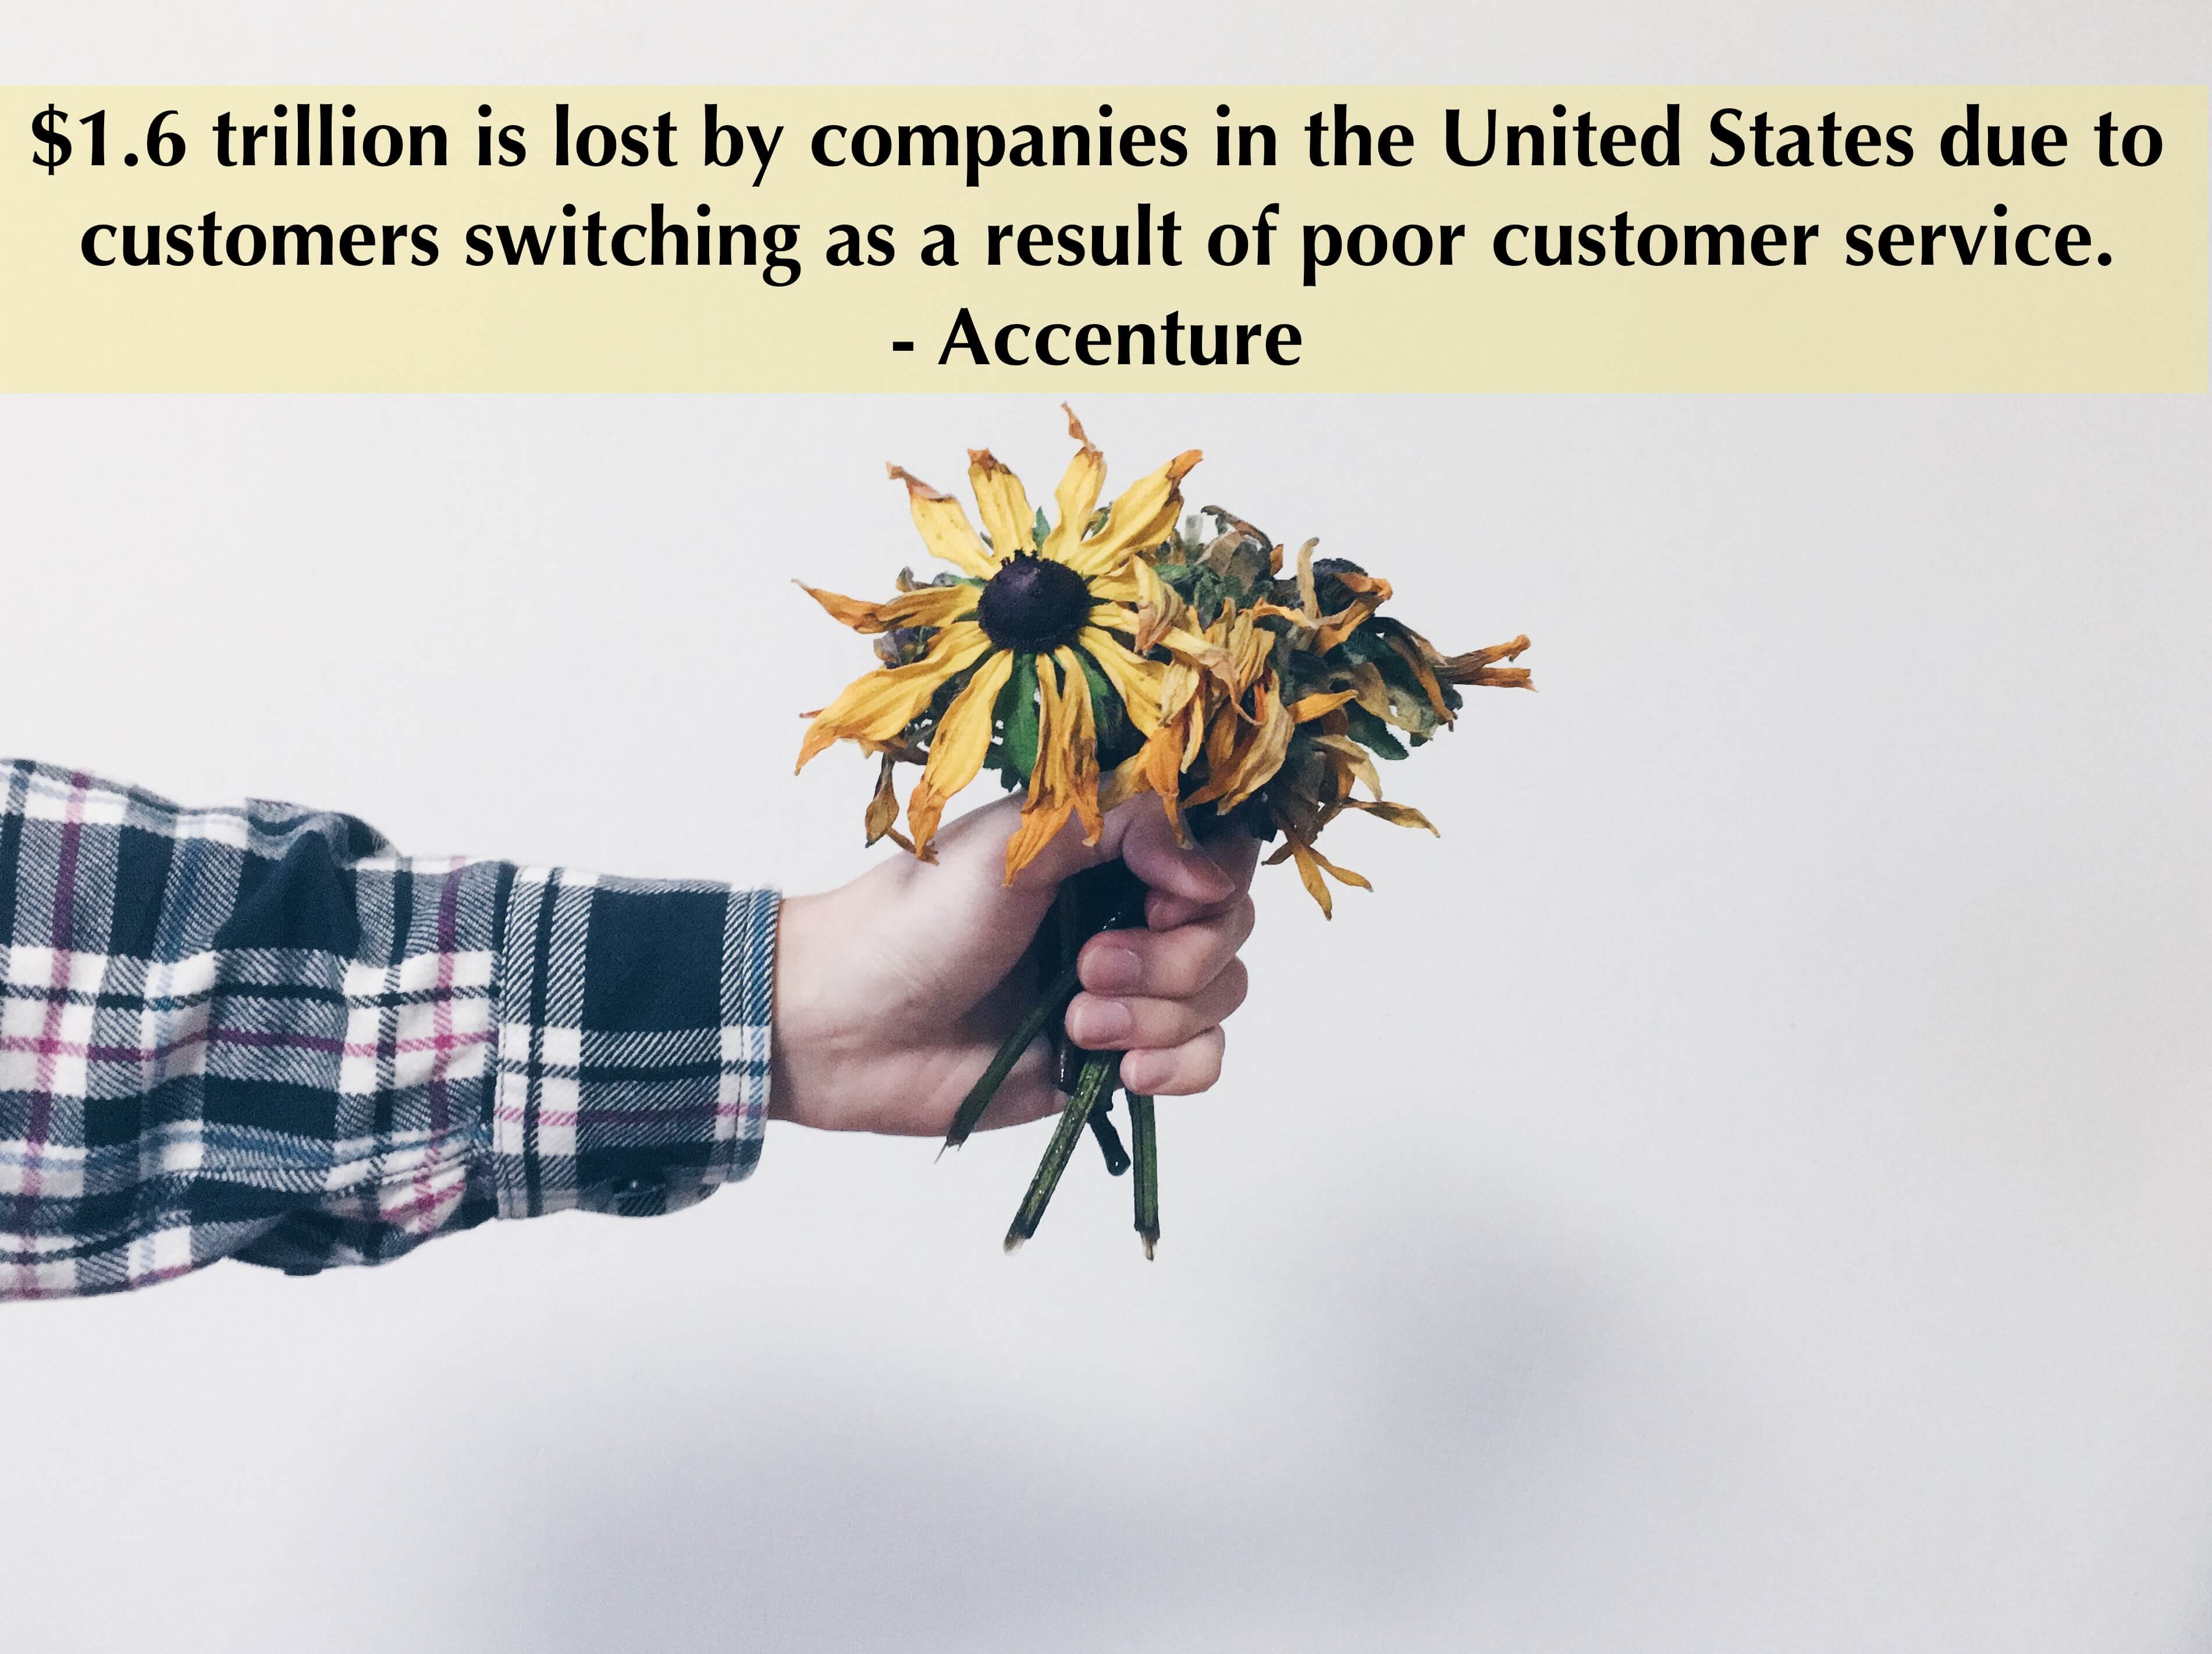 $1.6 trillion is lost by companies in the United States due to customers switching as a result of poor customer service. - Accenture